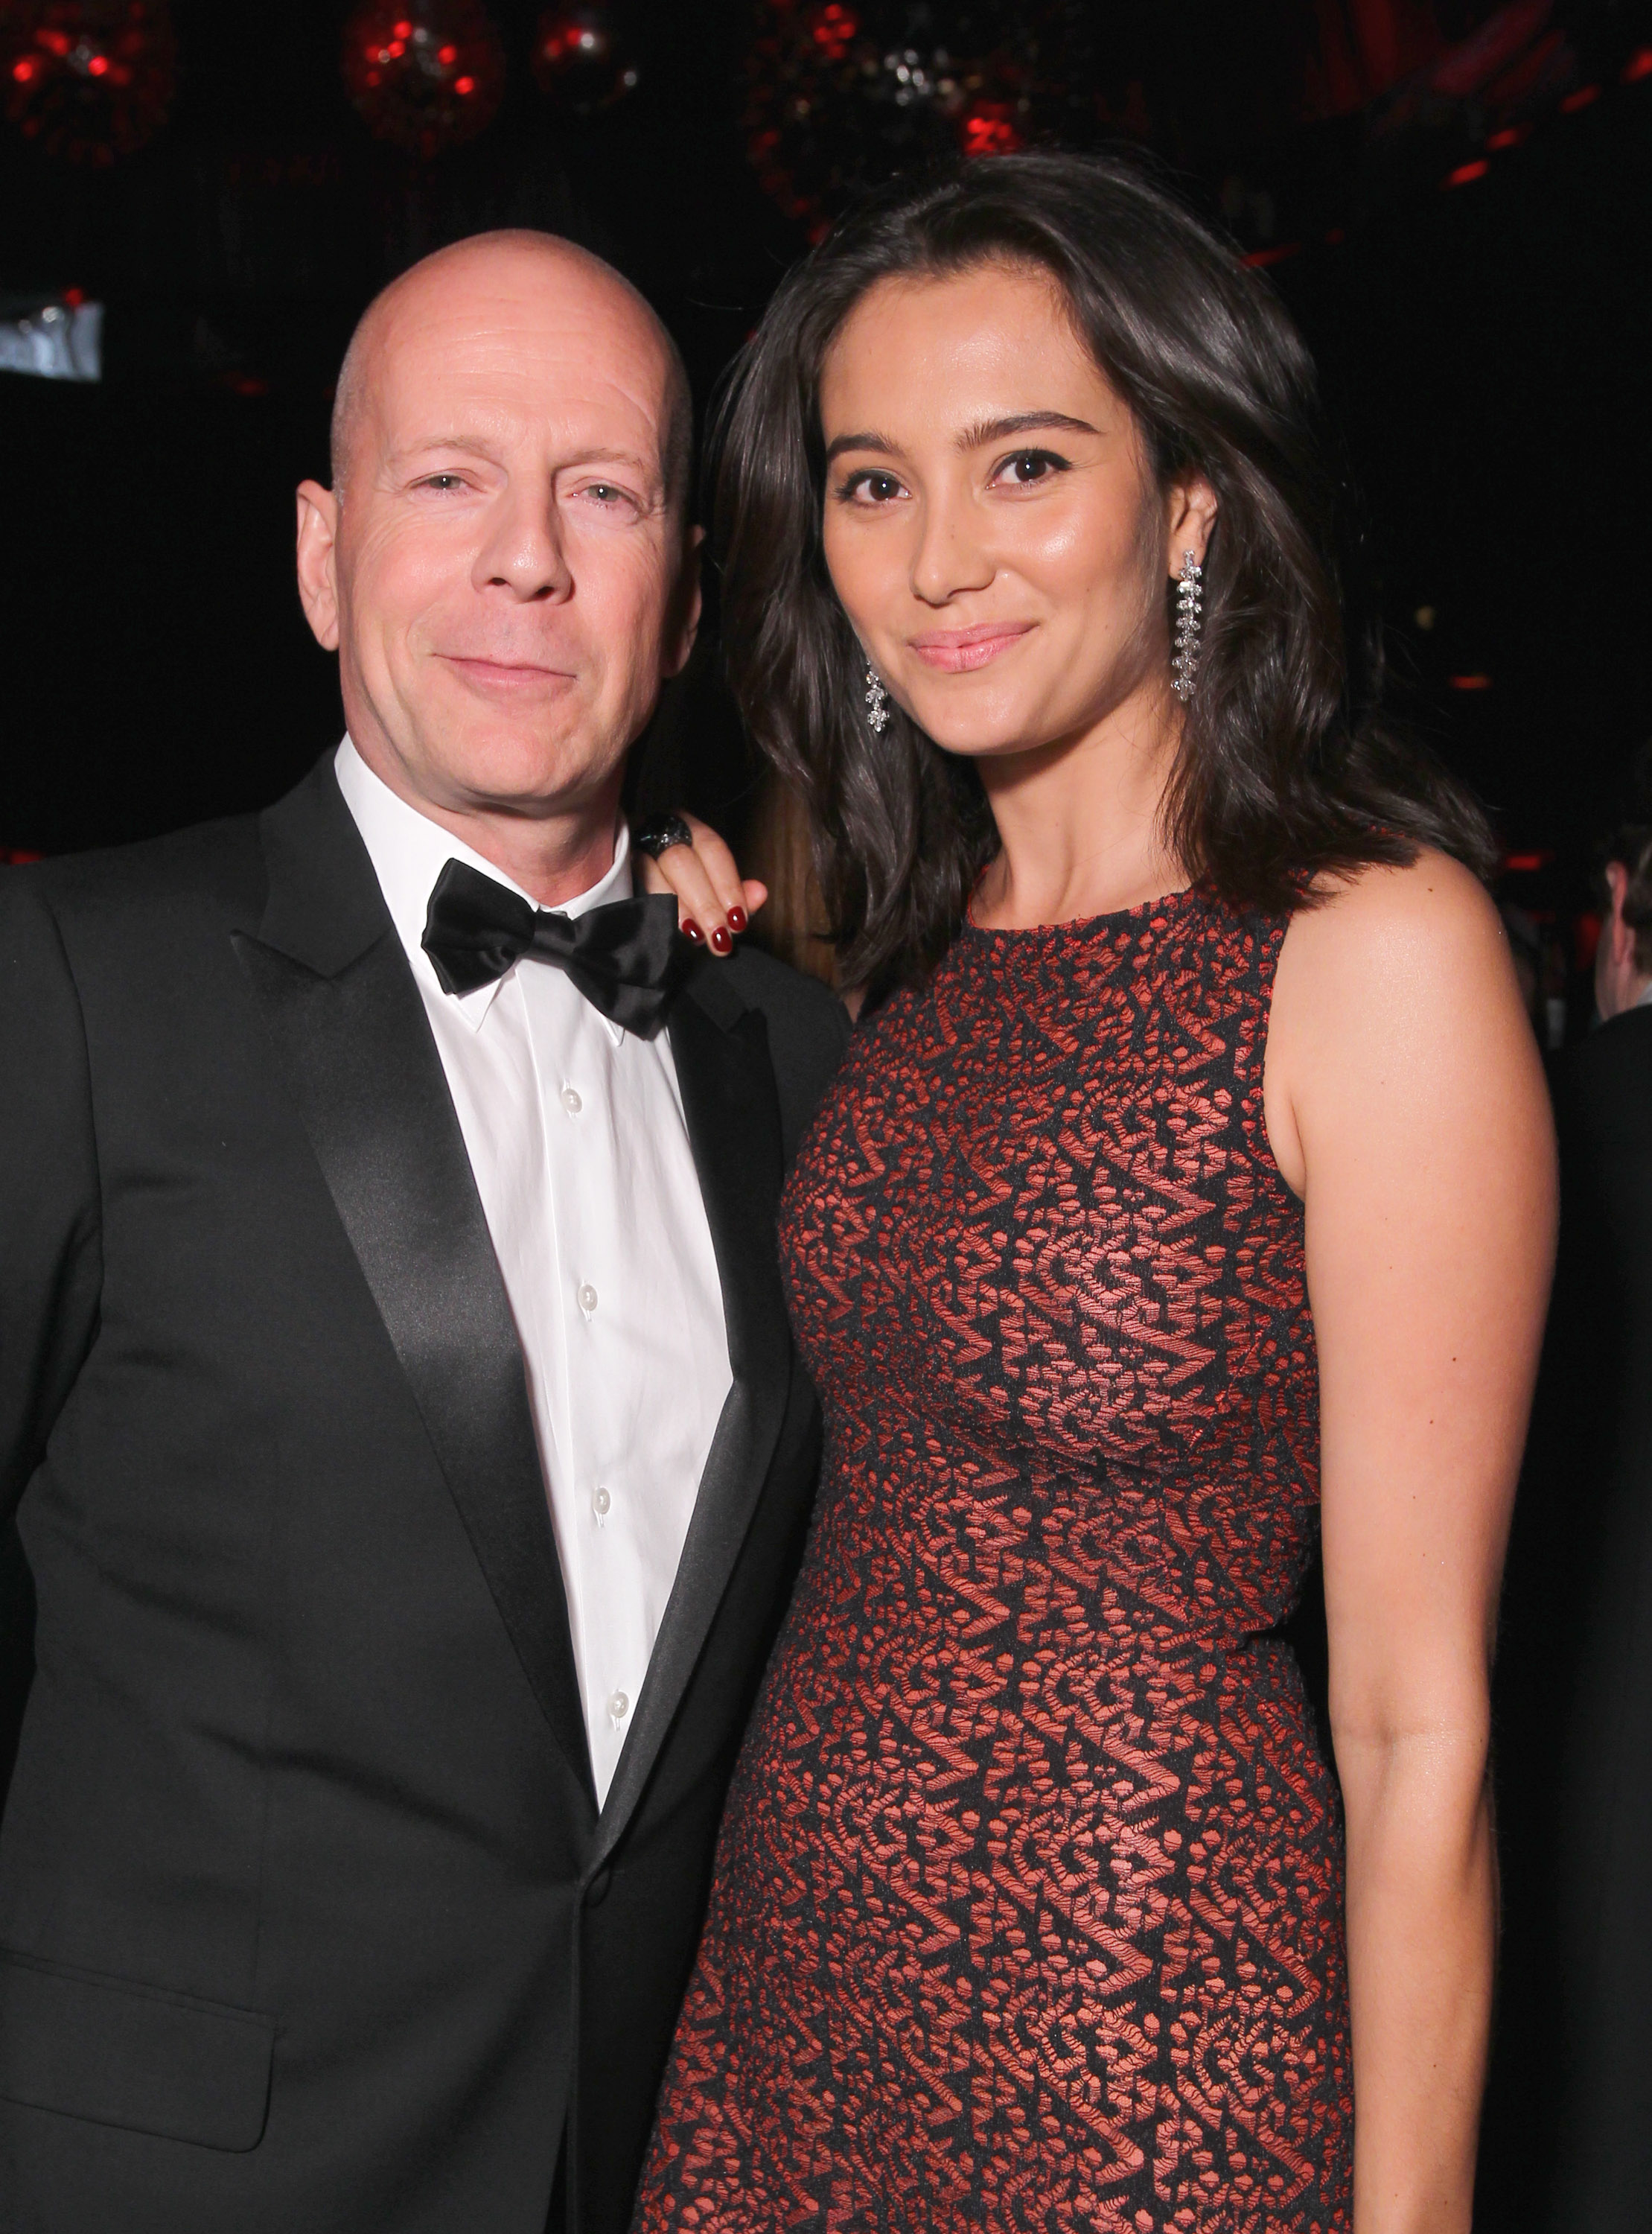 Emma Willis Talks Renewing Her Vows With Husband Bruce Willis On Their 10th Wedding Anniversary Closer Weekly